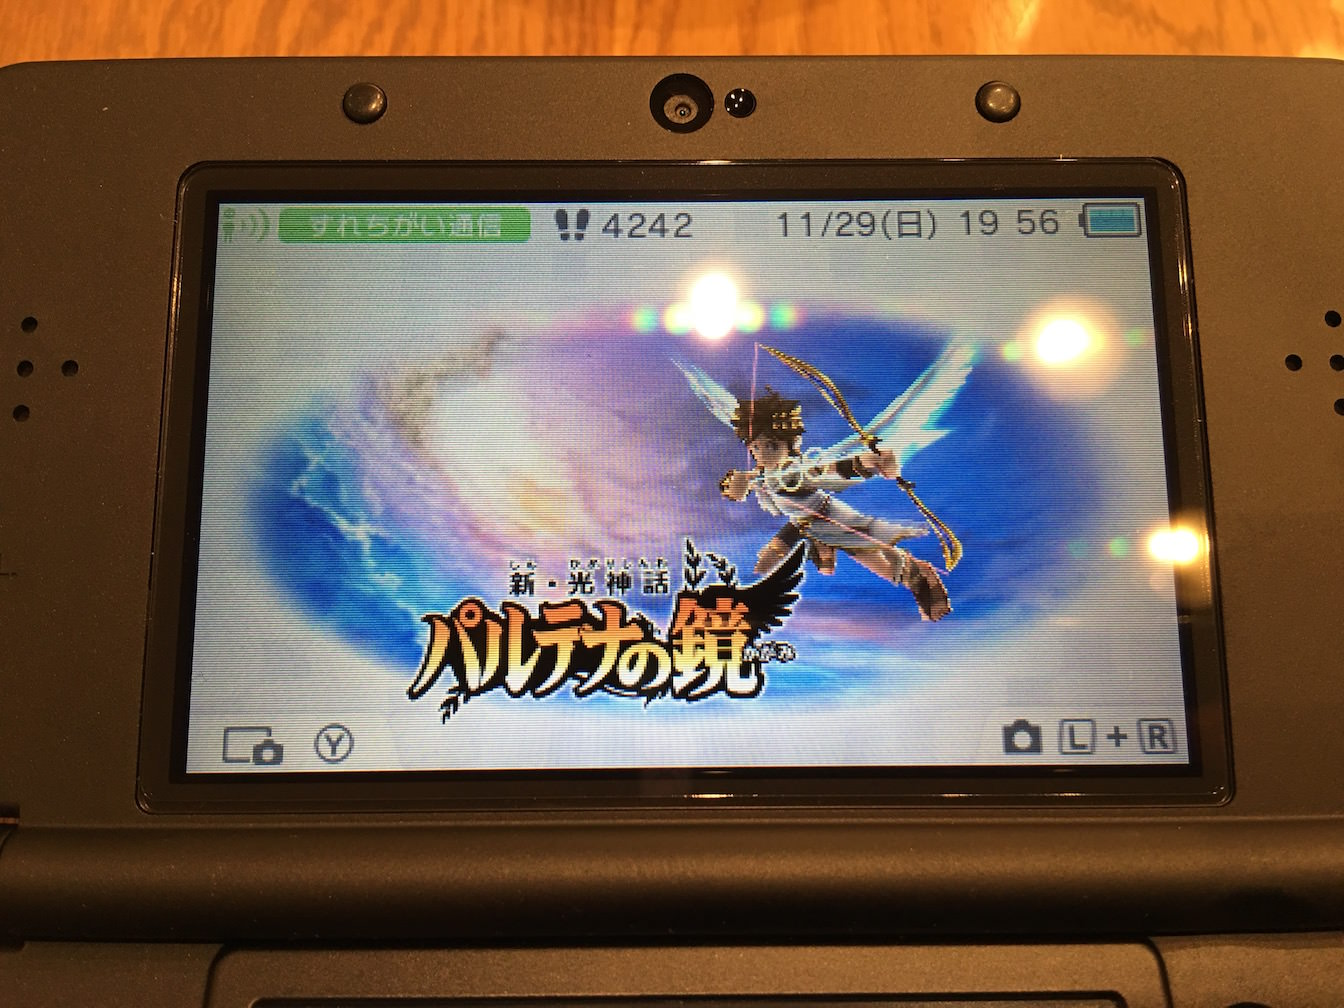 Review of zero pita filter for new nintendo 3ds 8